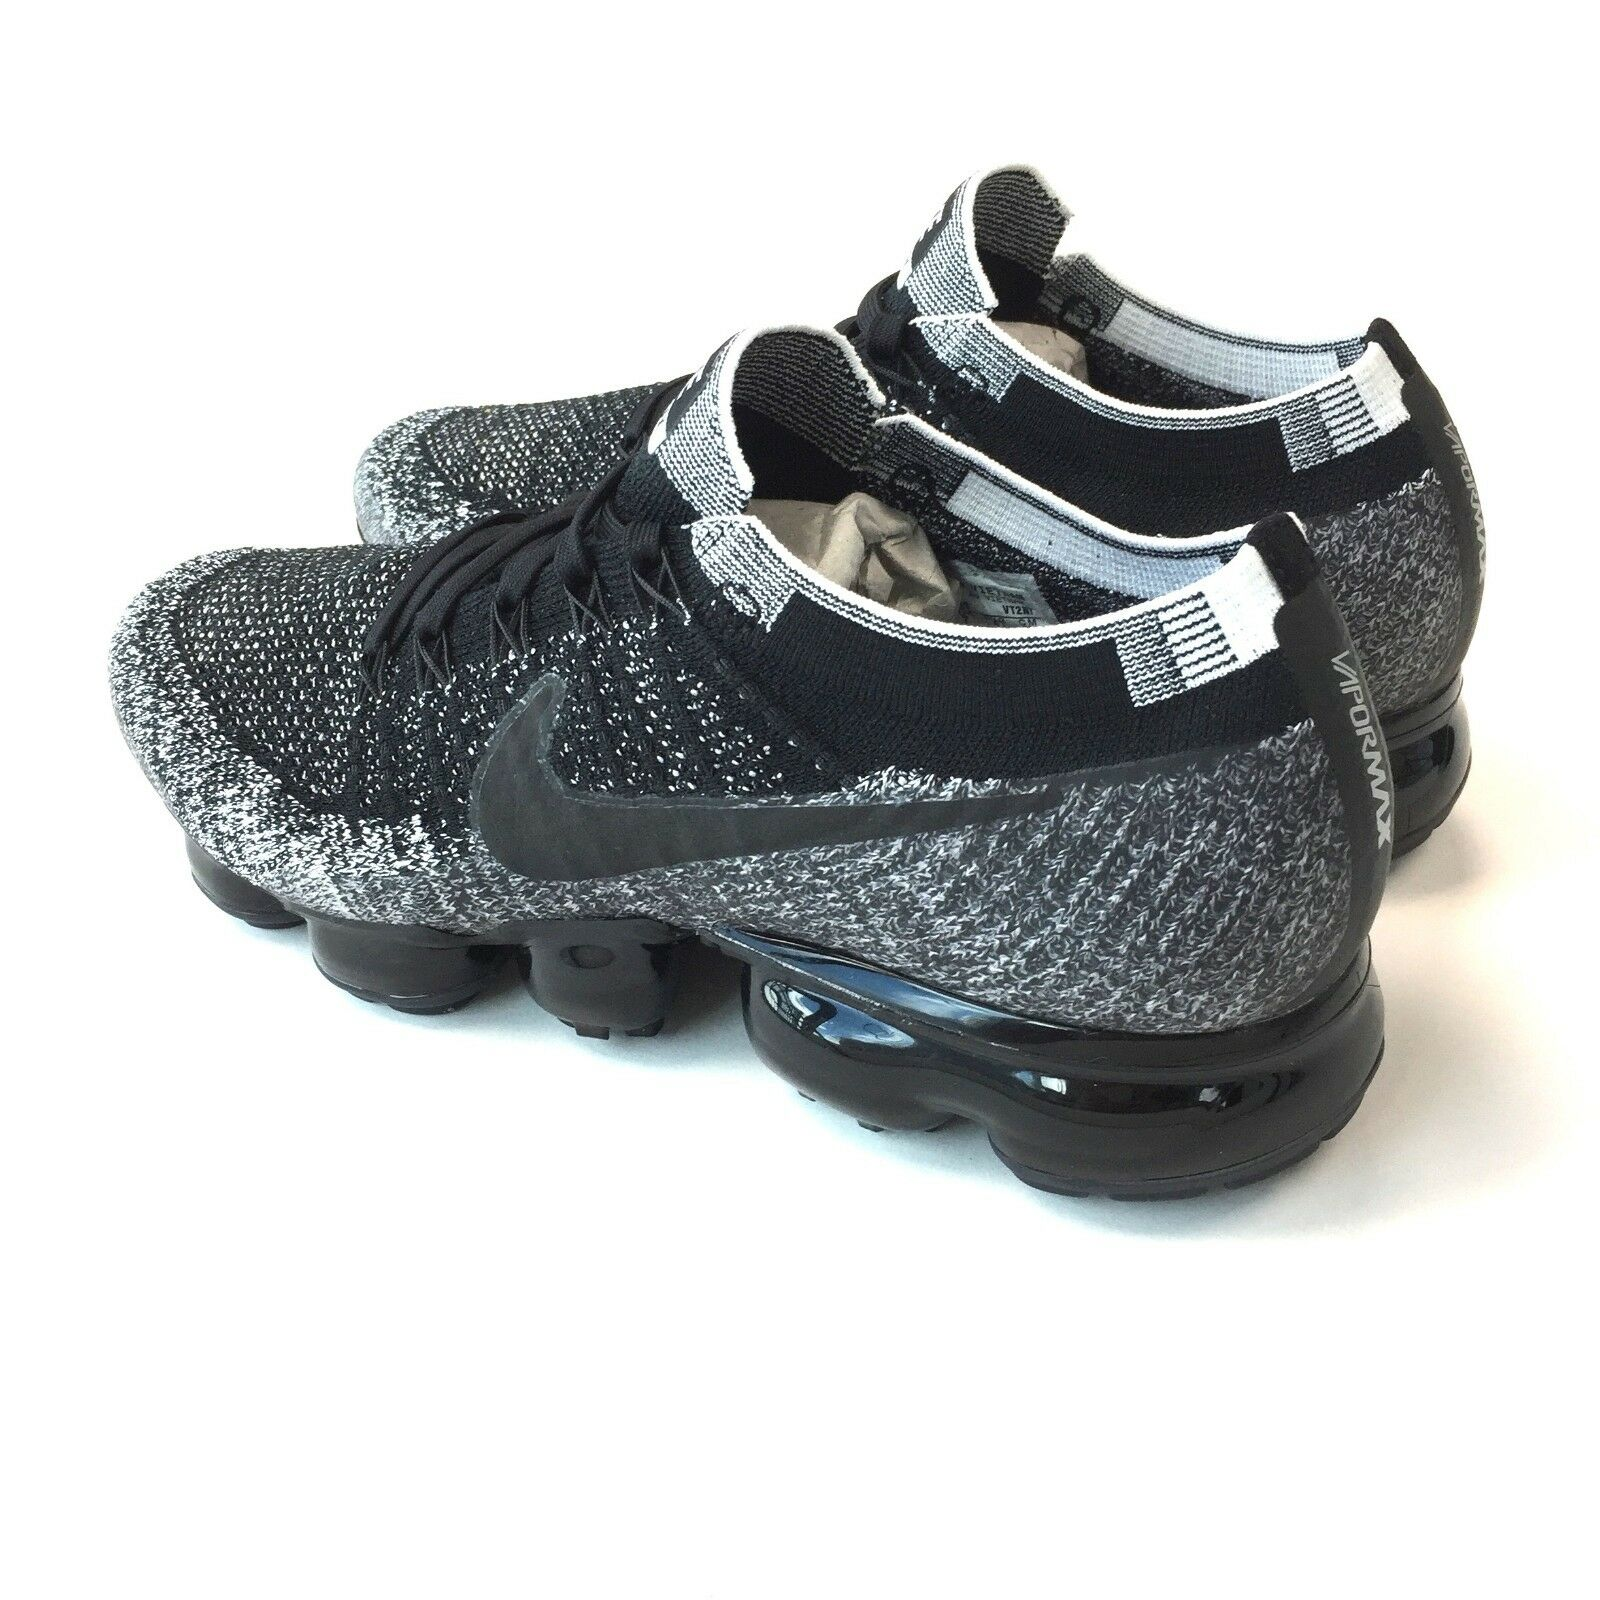 06e952f5c3a6 NWT Nike Men s Air Vapormax ID Flyknit NikeID Black White Oreo DS 12  AUTHENTIC